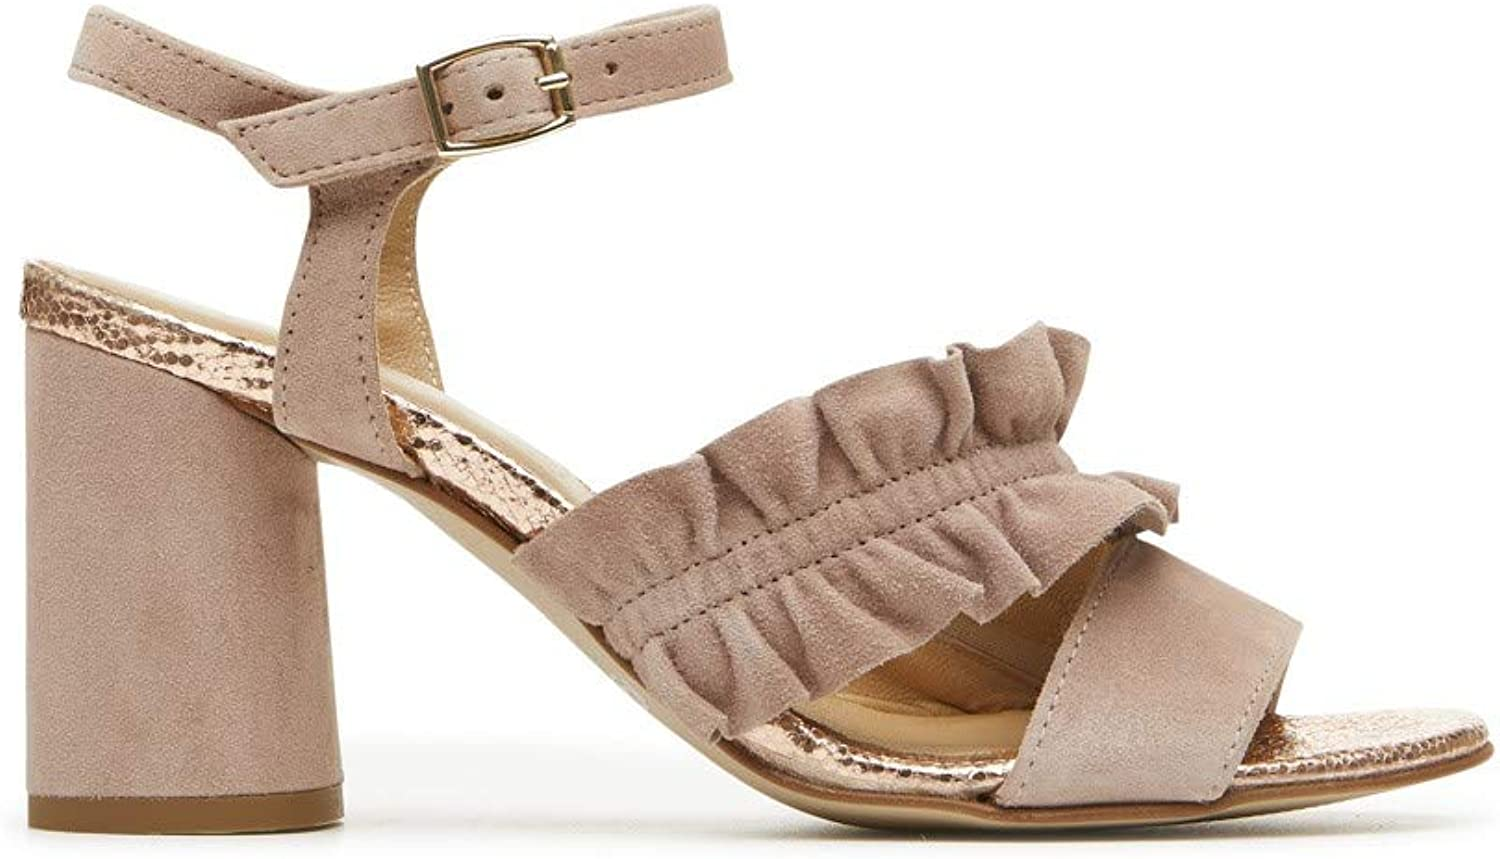 IGI & CO 3187655 Women's Sandals in Antique Pink Leather with Made in  Heel